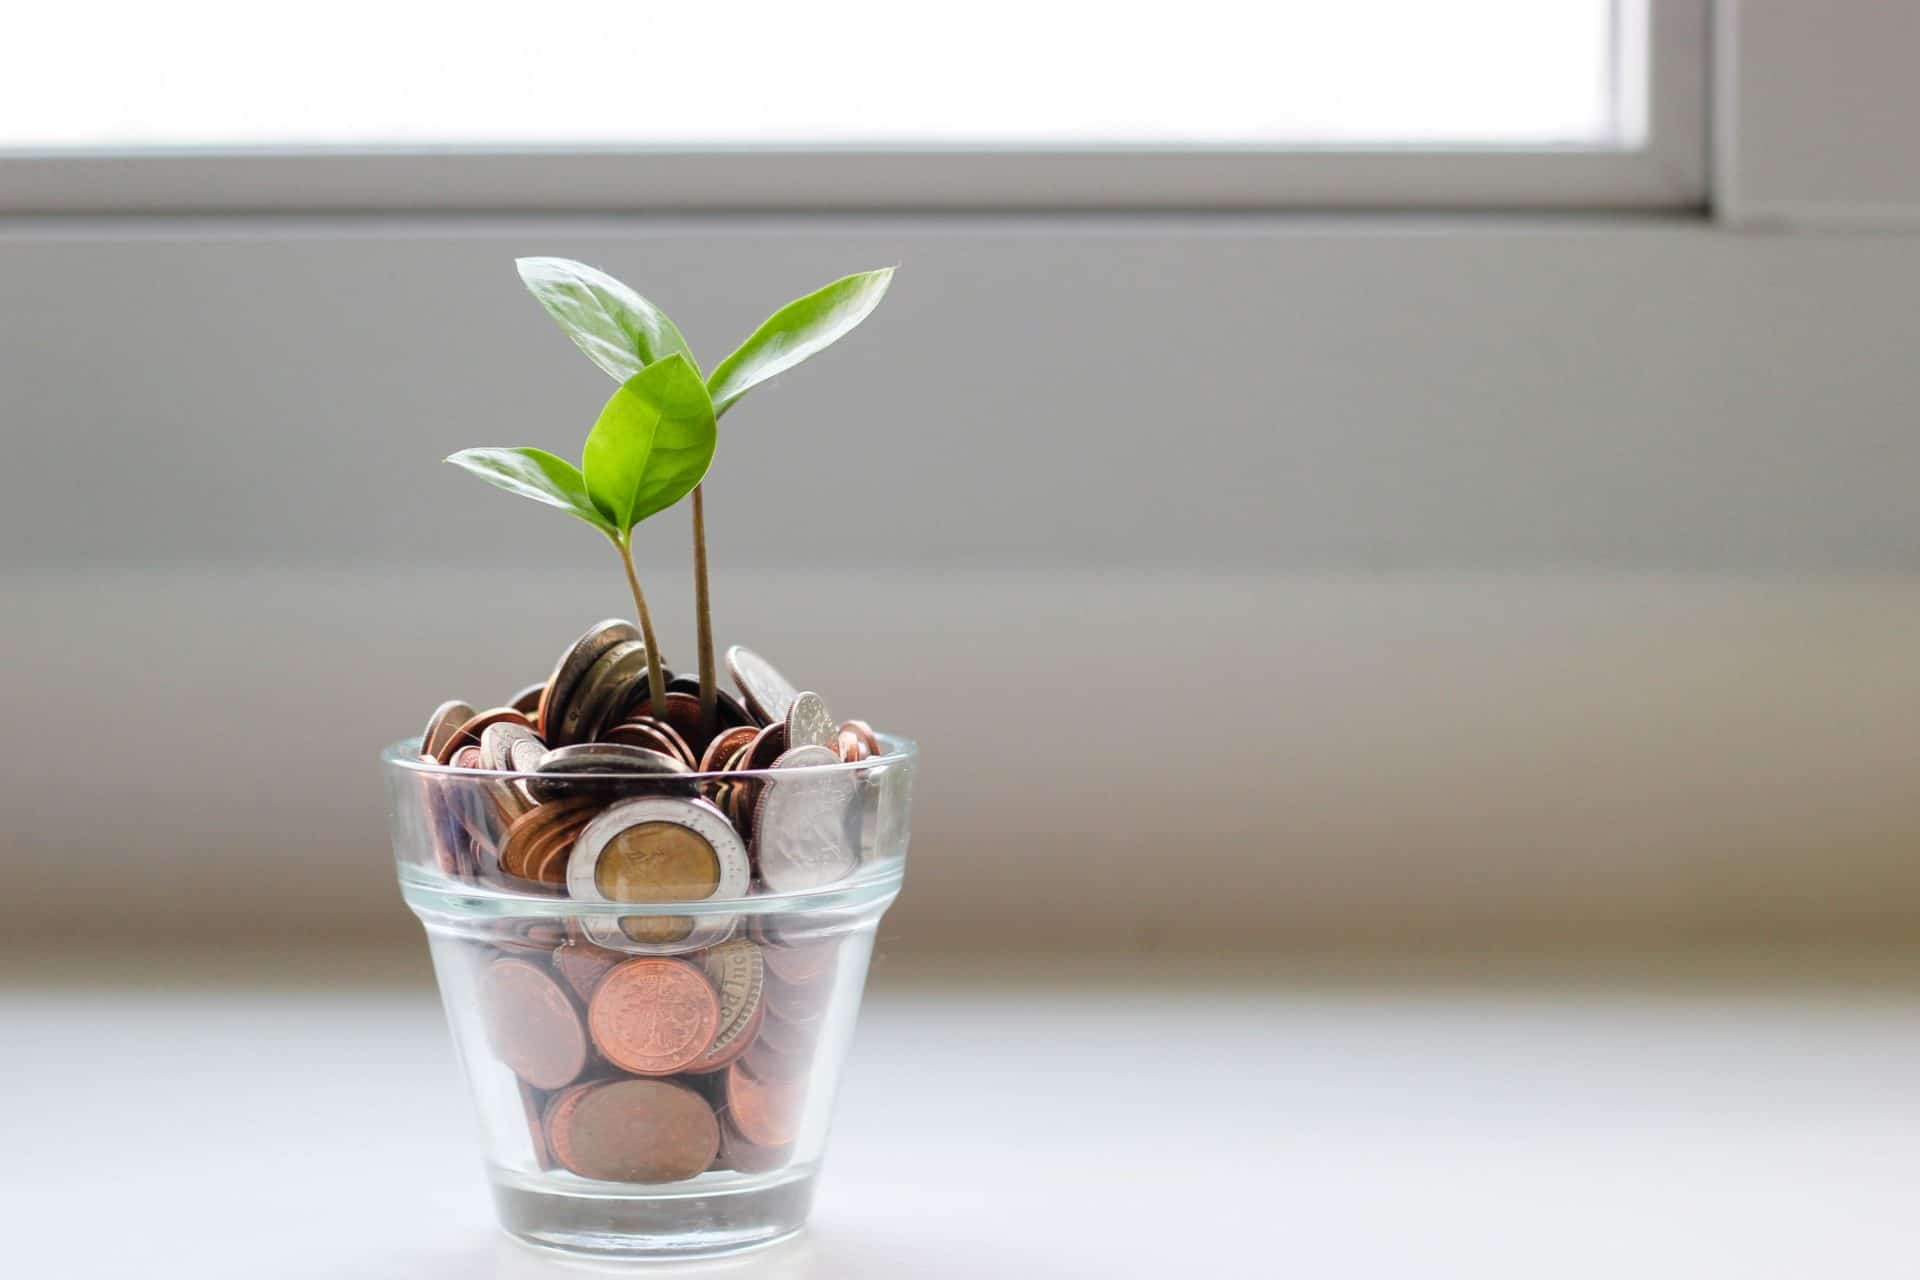 A plant growing from money - Mindset to become rich